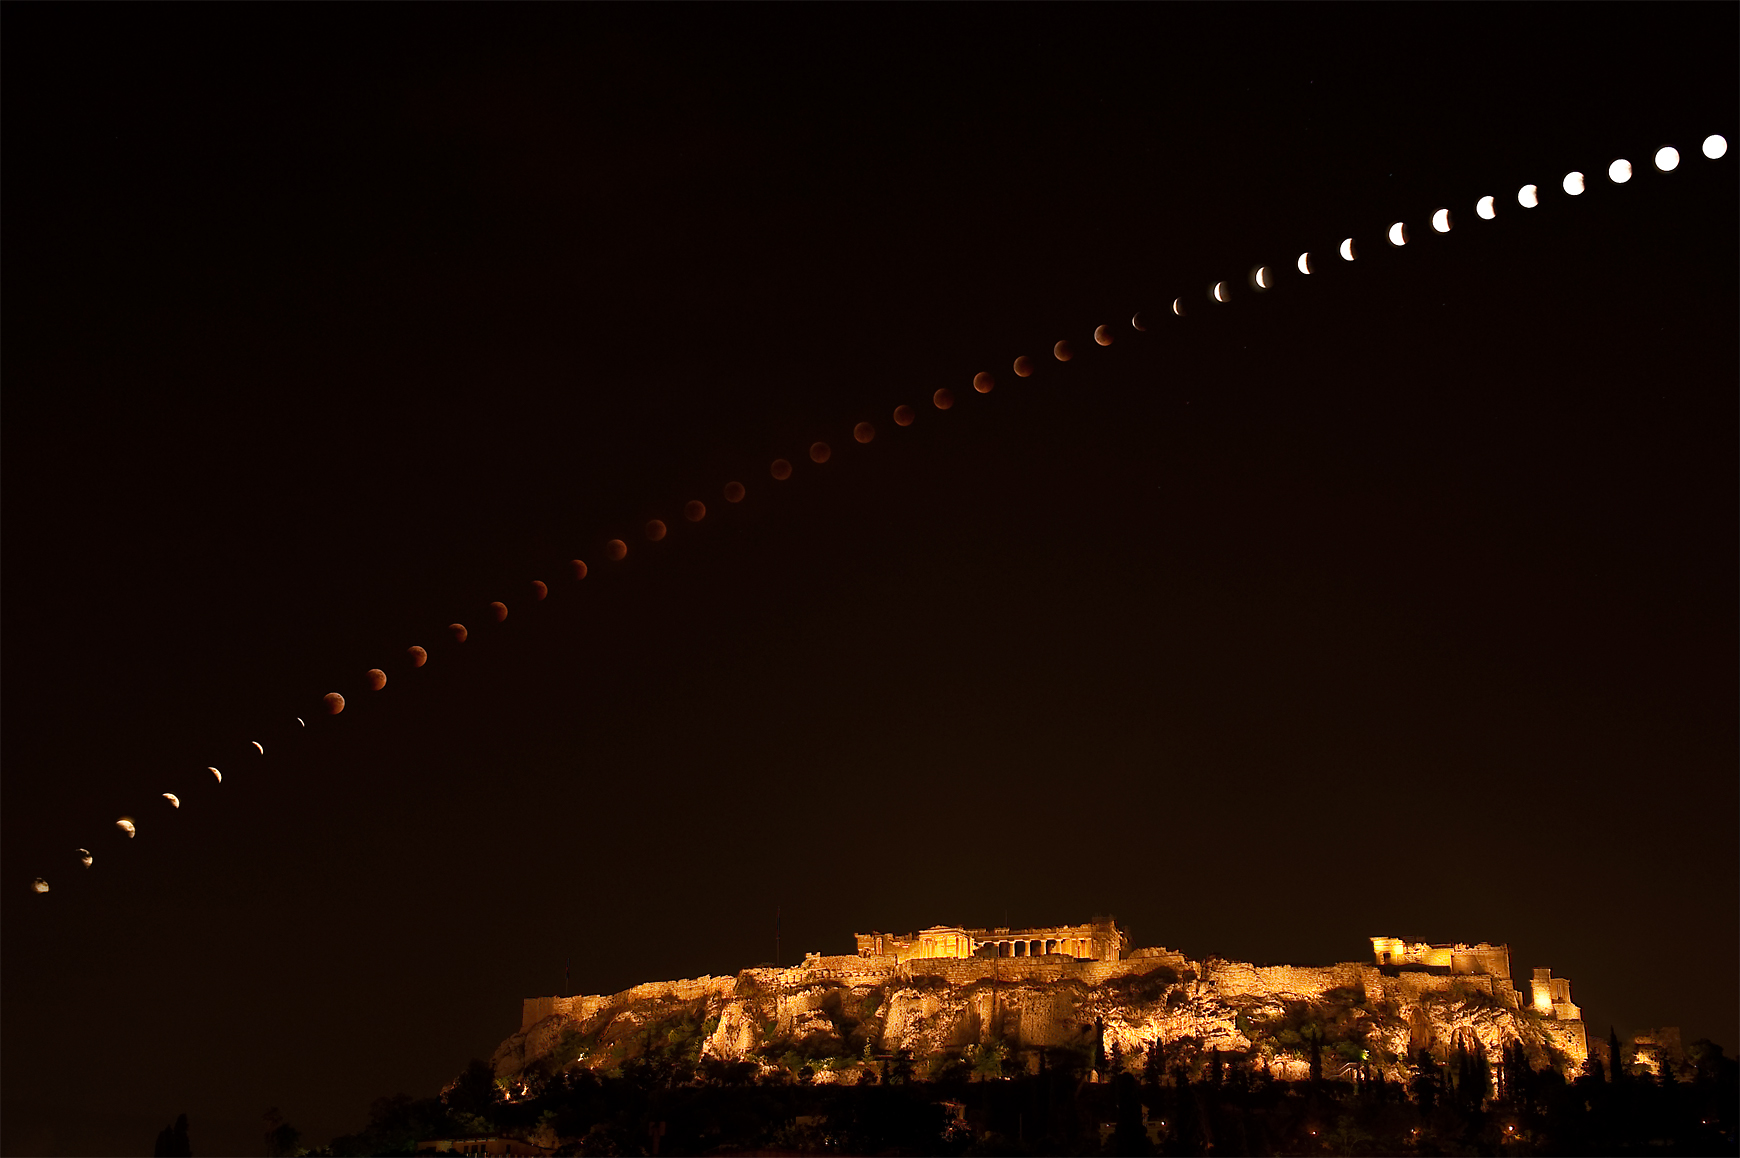 lunar eclipse, eclipse of the Moon,